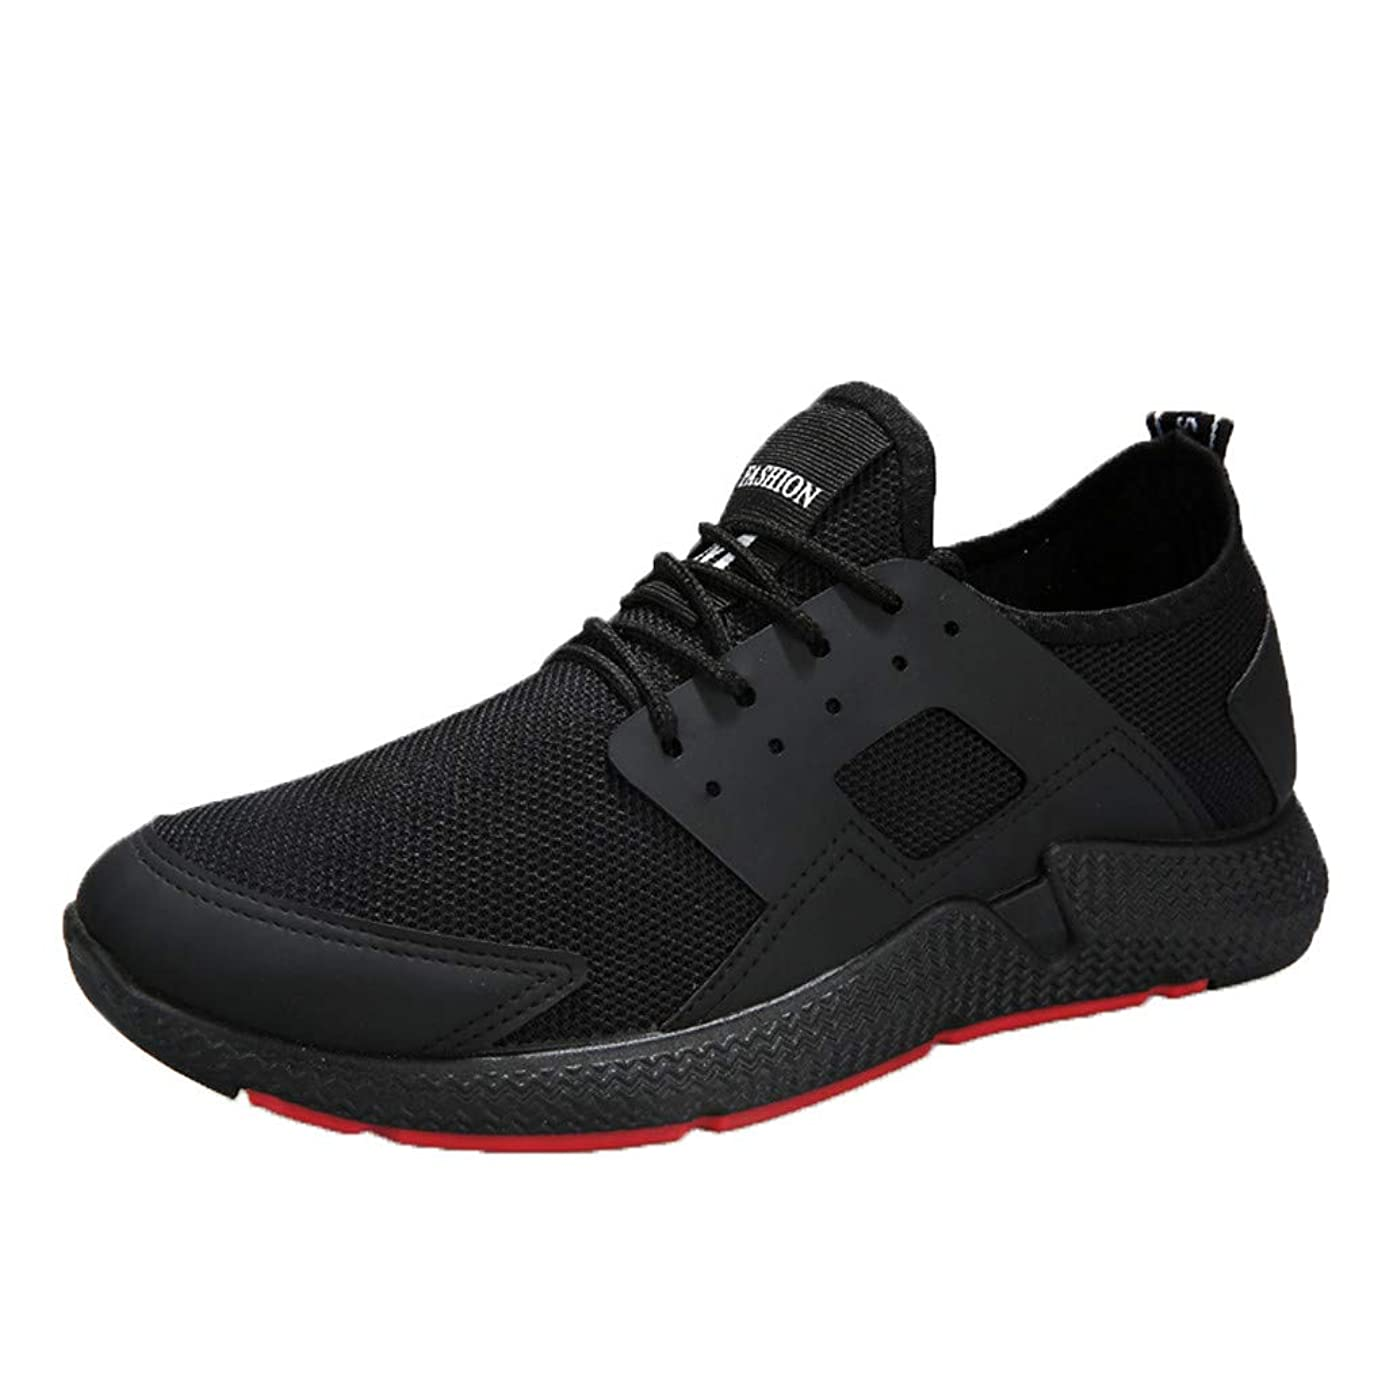 Mosunx Athletic Men's Breathable Sneakers, Boys Sport Running Shoes Lightweight Lace-Up Soft Sole Stretch Gym Track Training Shoes Size 7-9.5 Trail Non-Slip Movement Shoes (42, Black)